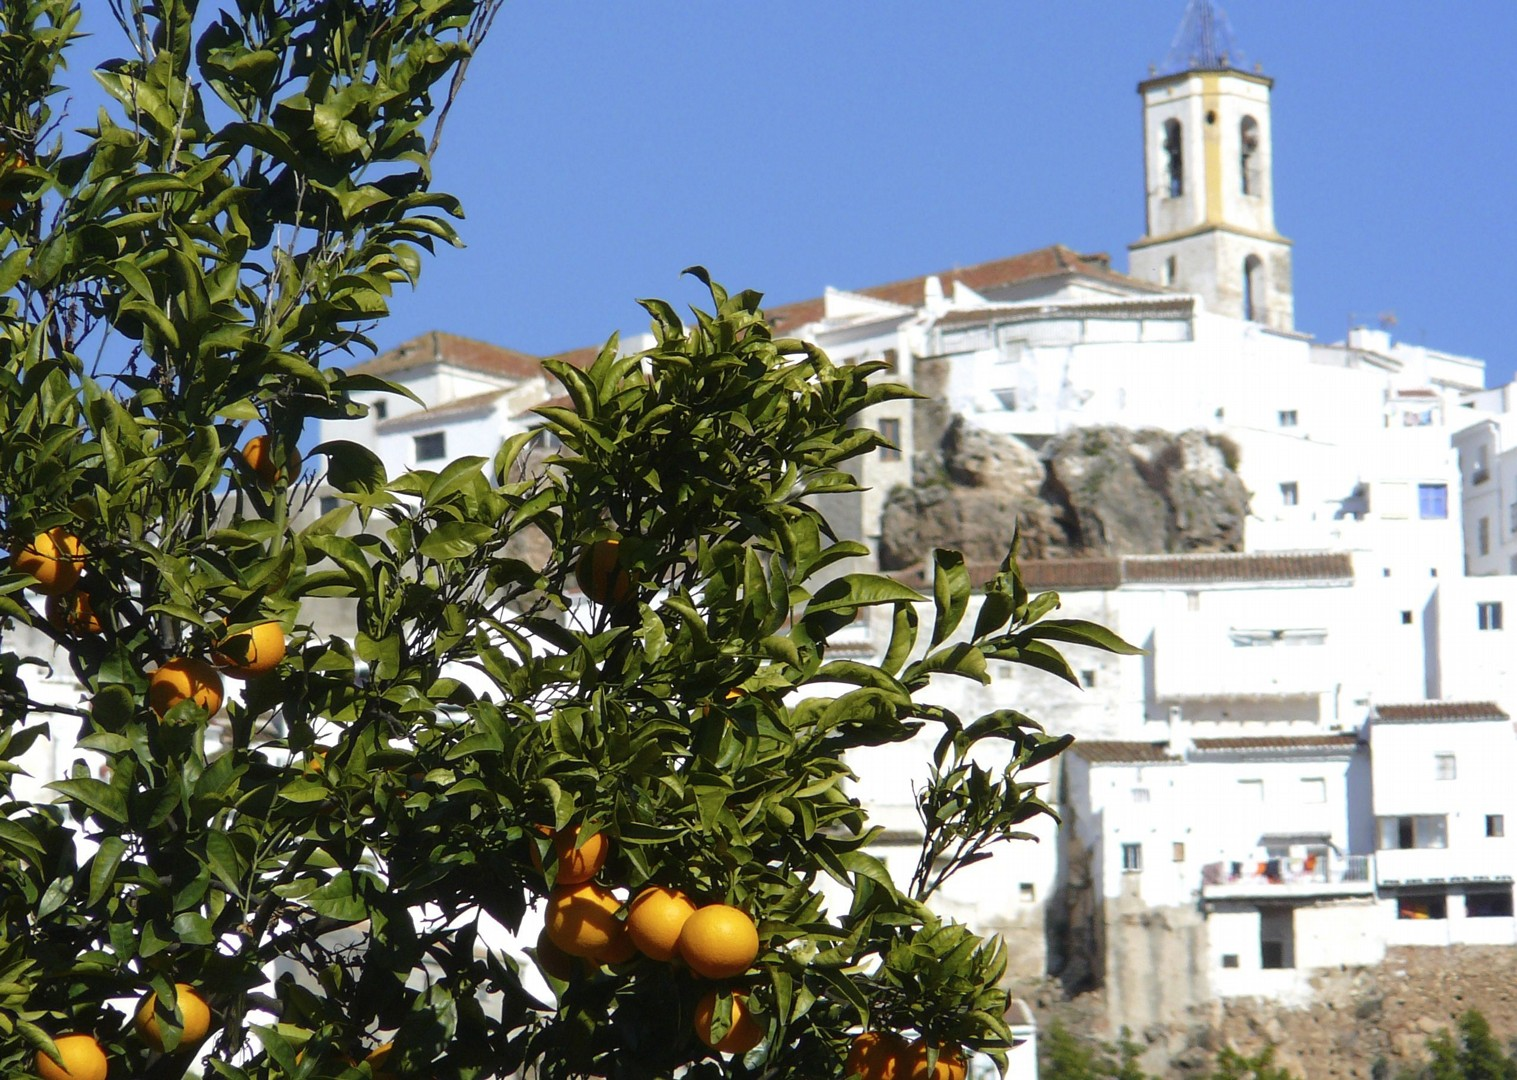 seville-self-guided-leisure-cycling-holiday.jpg - Southern Spain - Granada to Seville - Self-Guided Leisure Cycling Holiday - Leisure Cycling